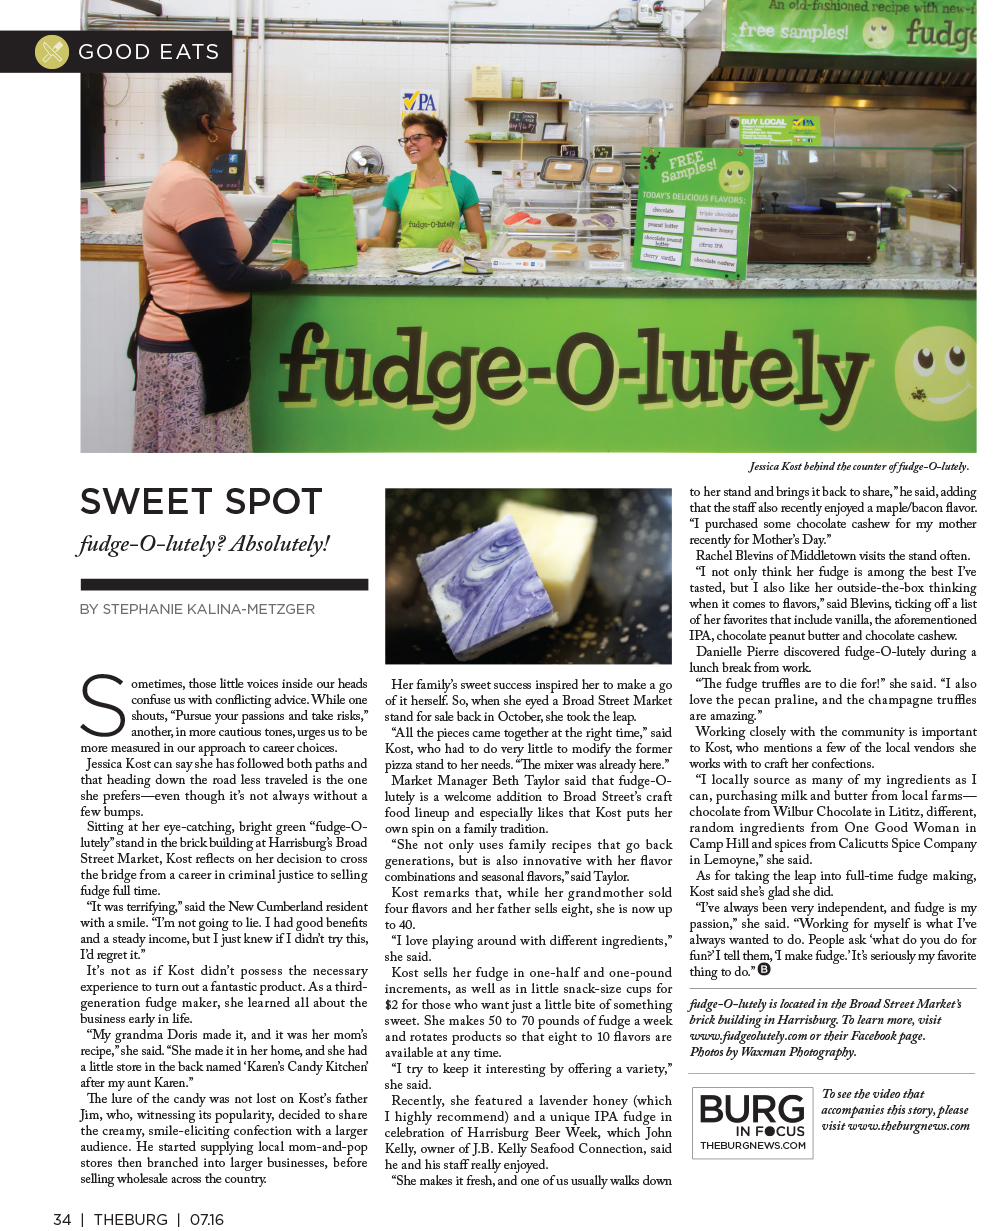 The Burg July 2016 Fudge-o-lutely article